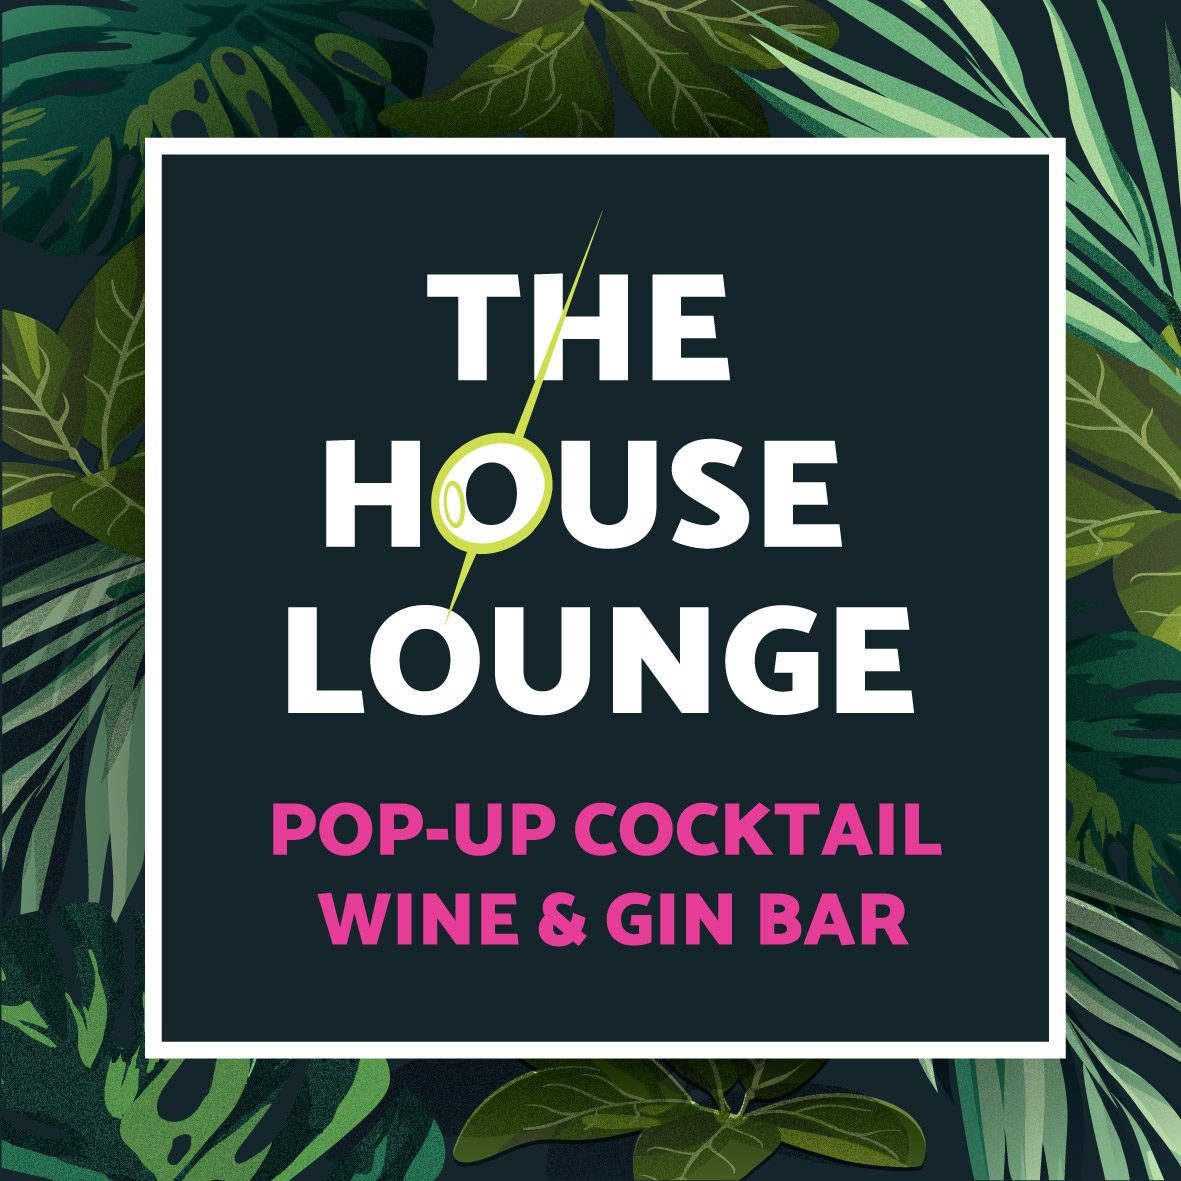 The House Lounge: Pop-up Cocktail, Wine & Gin Bar